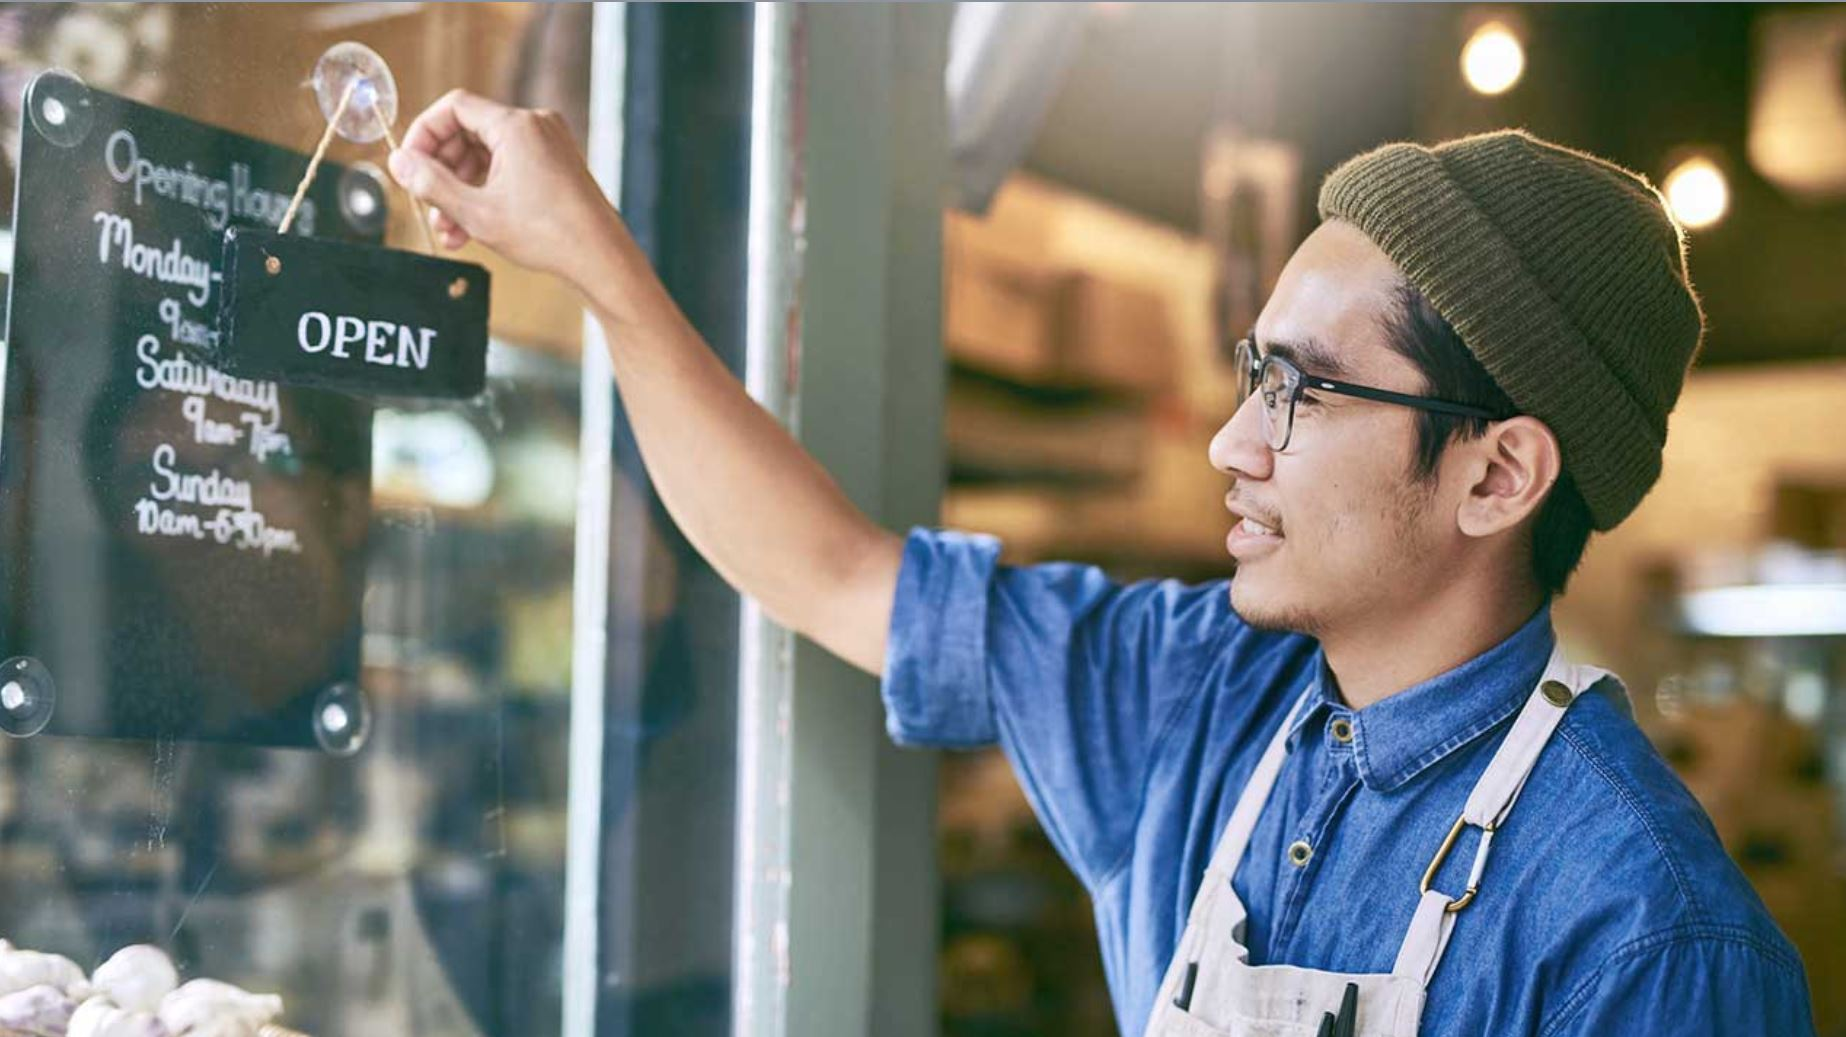 Facebook Small Business Grant Programme Aims to Help Out Malaysian Businesses 22